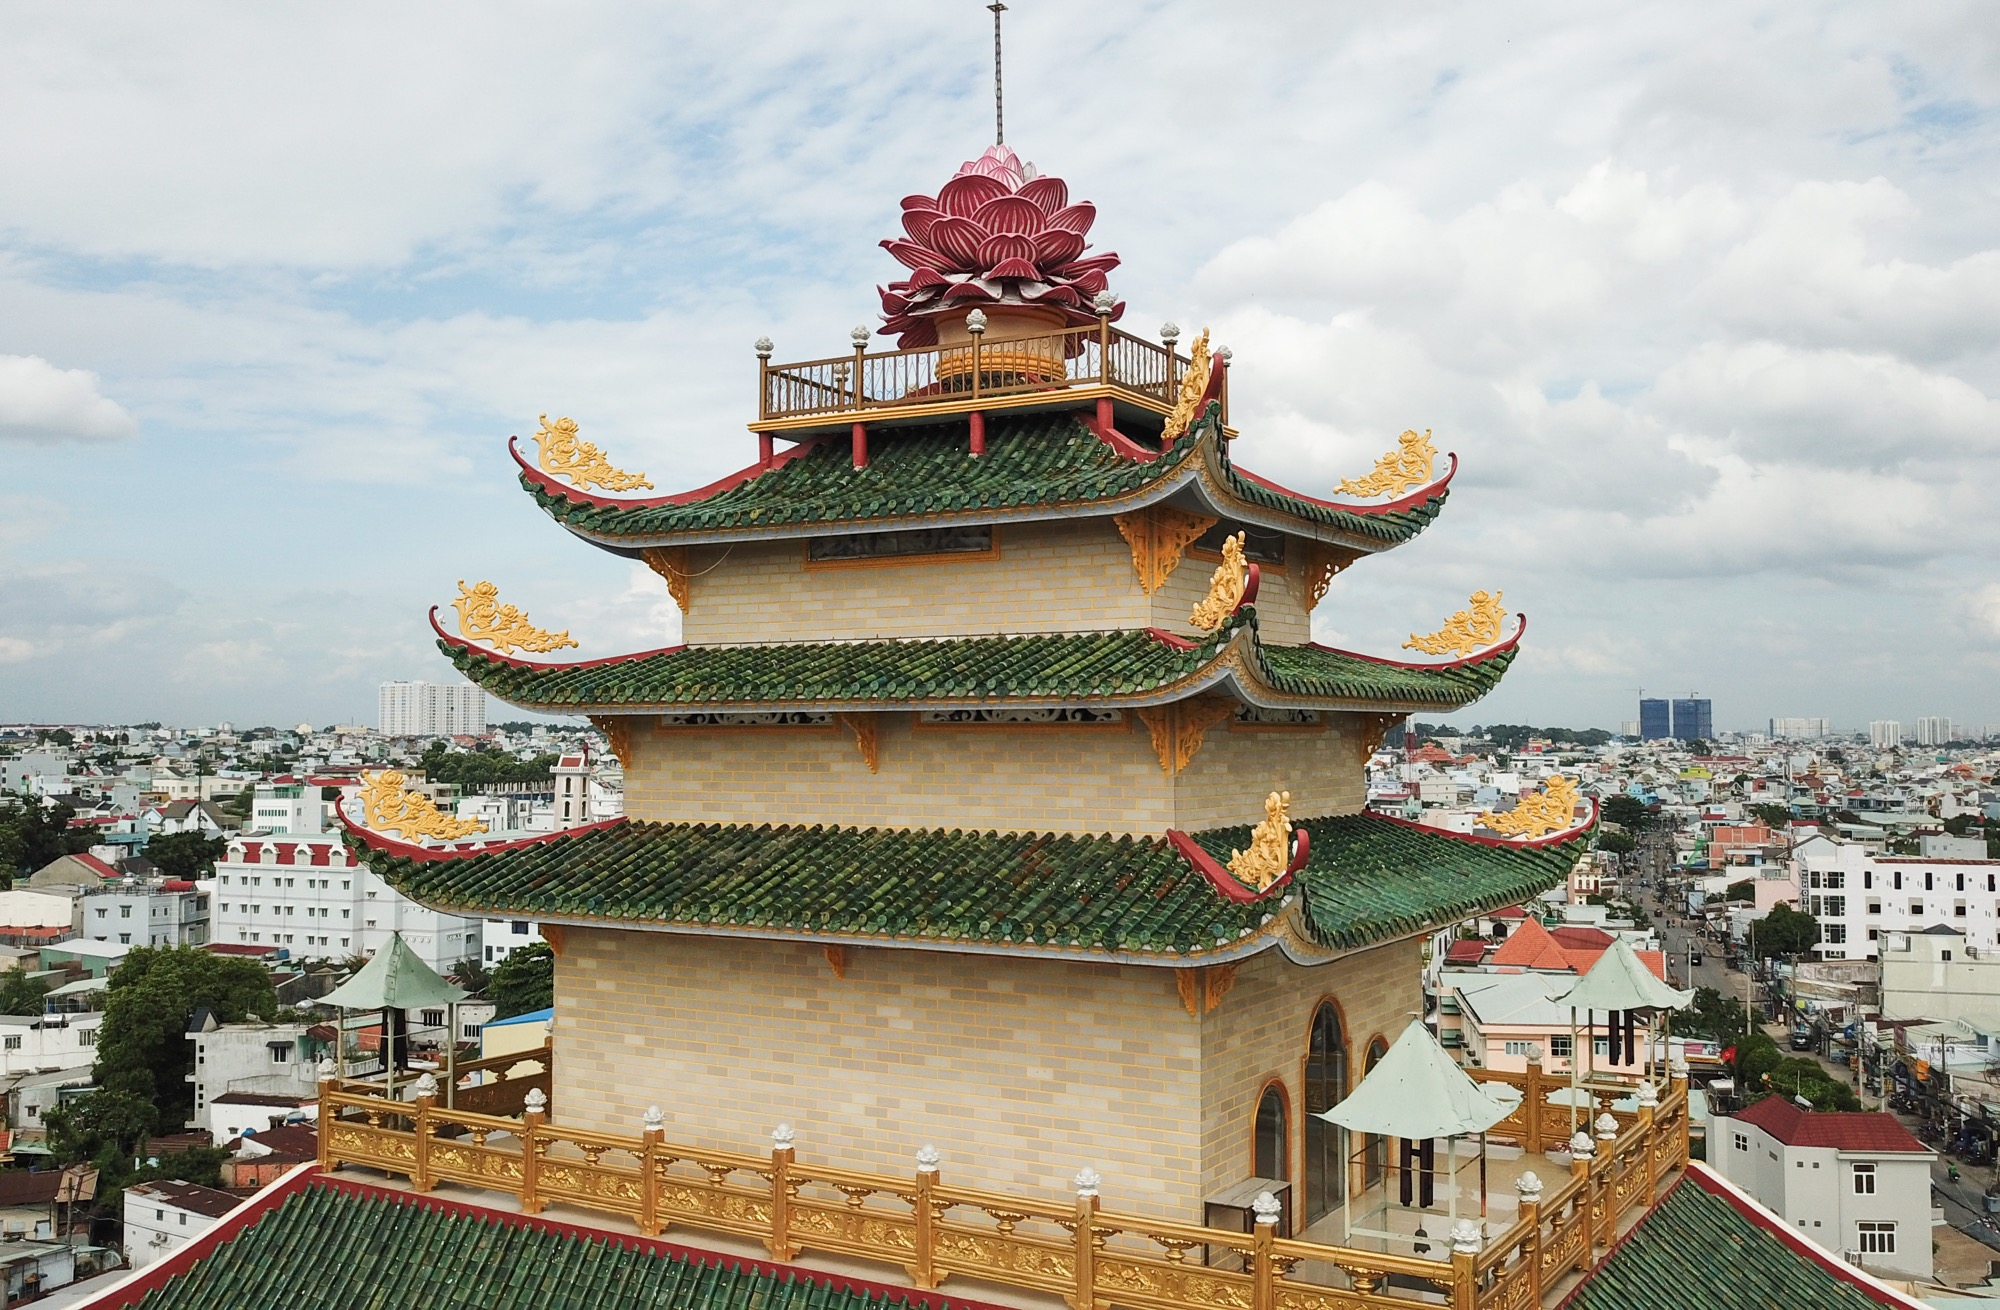 The tower has a nine-story structure with a lotus flower on top. Its upward curve with gold-colored decorations harmonizes perfectly with it green-glazed roof tiles.